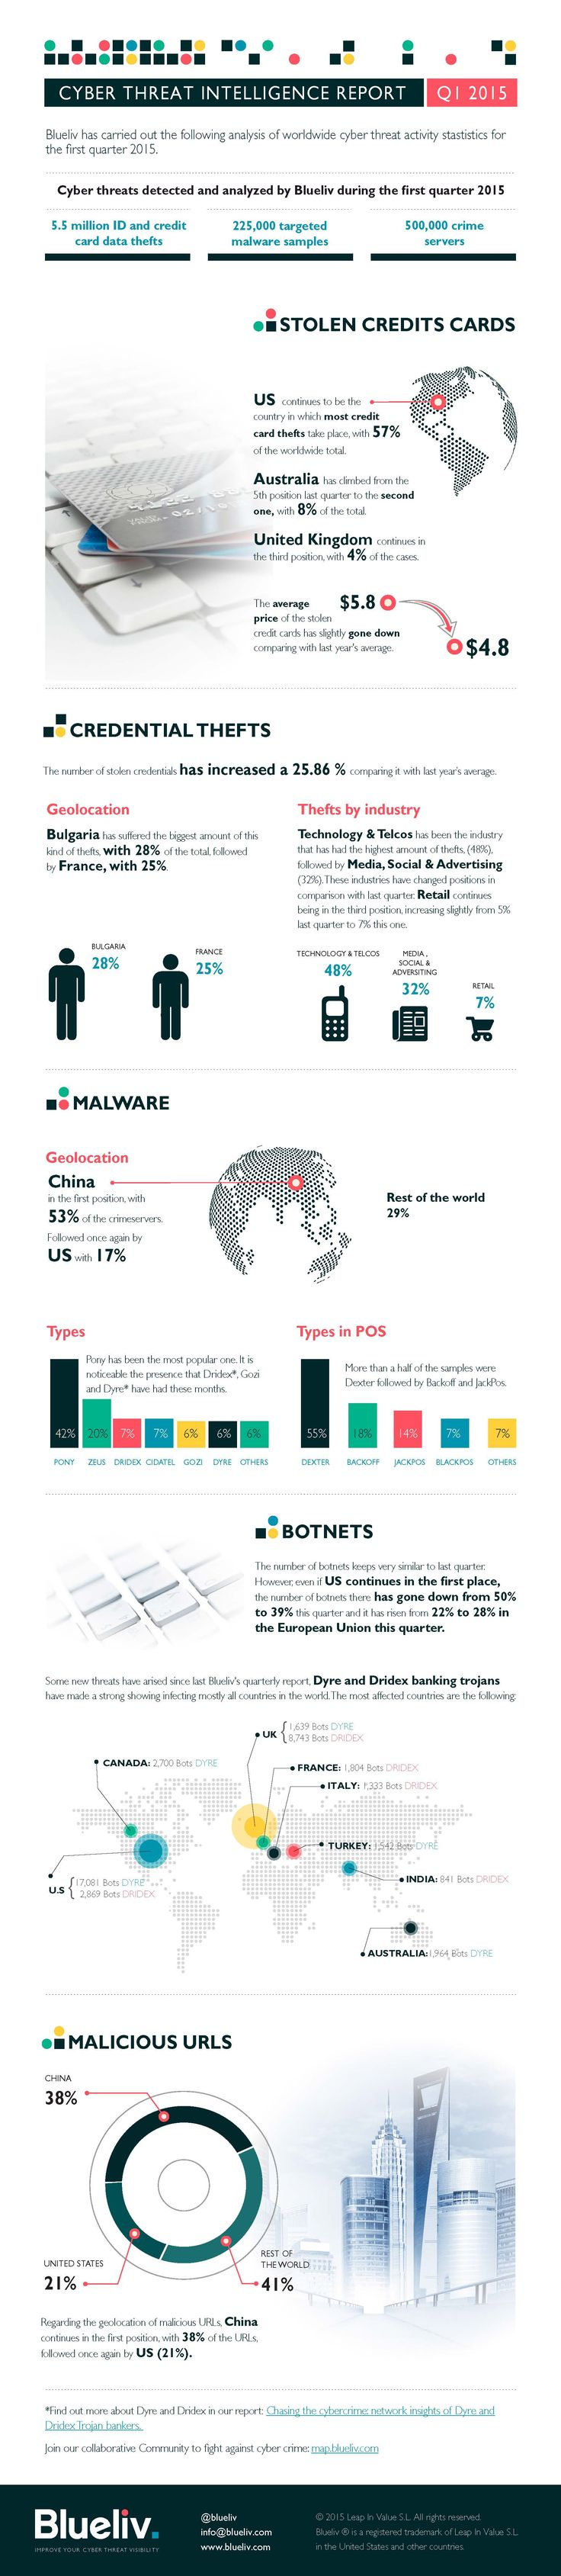 Cyber Threat Intelligence statistics Q1 2015